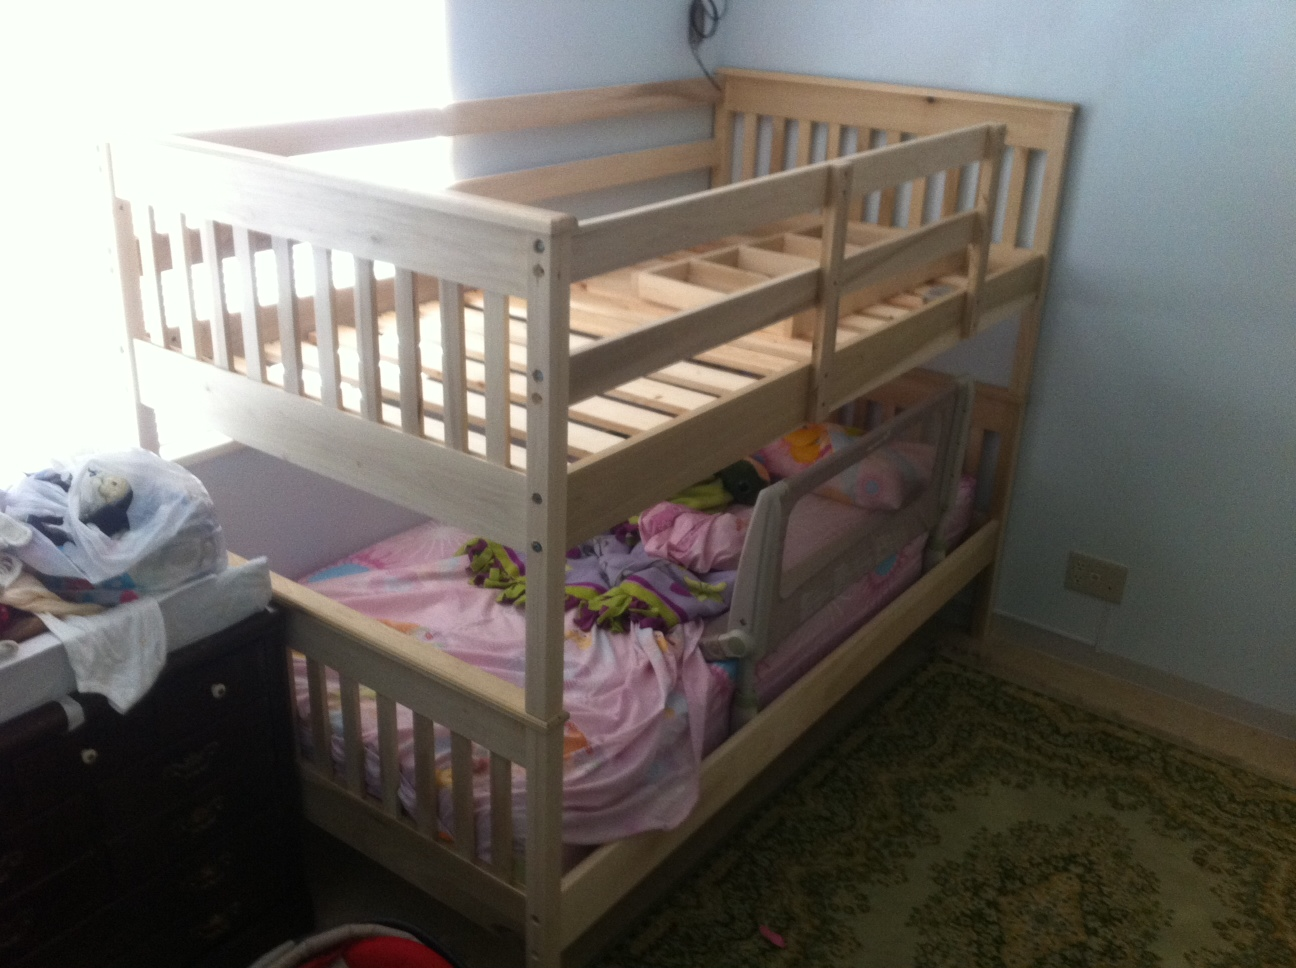 Toddler Bunks Toddler Bunk Bed Plans Bed Plans Diy And Blueprints